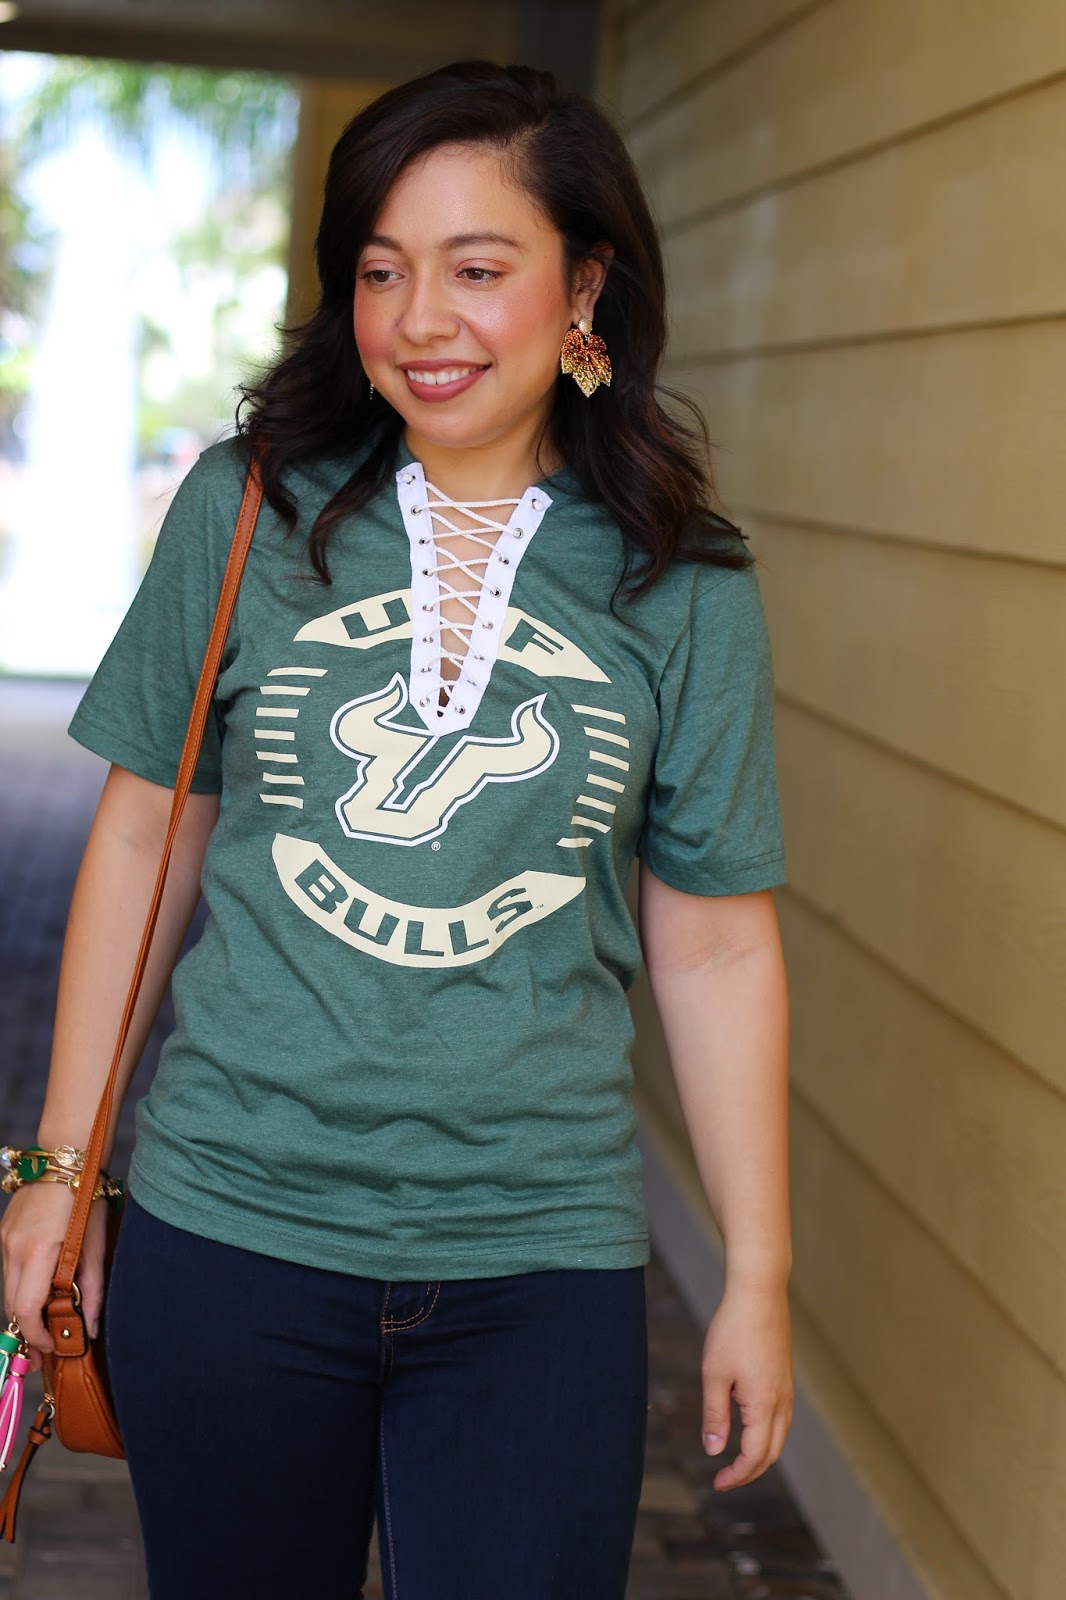 USF women's shirt